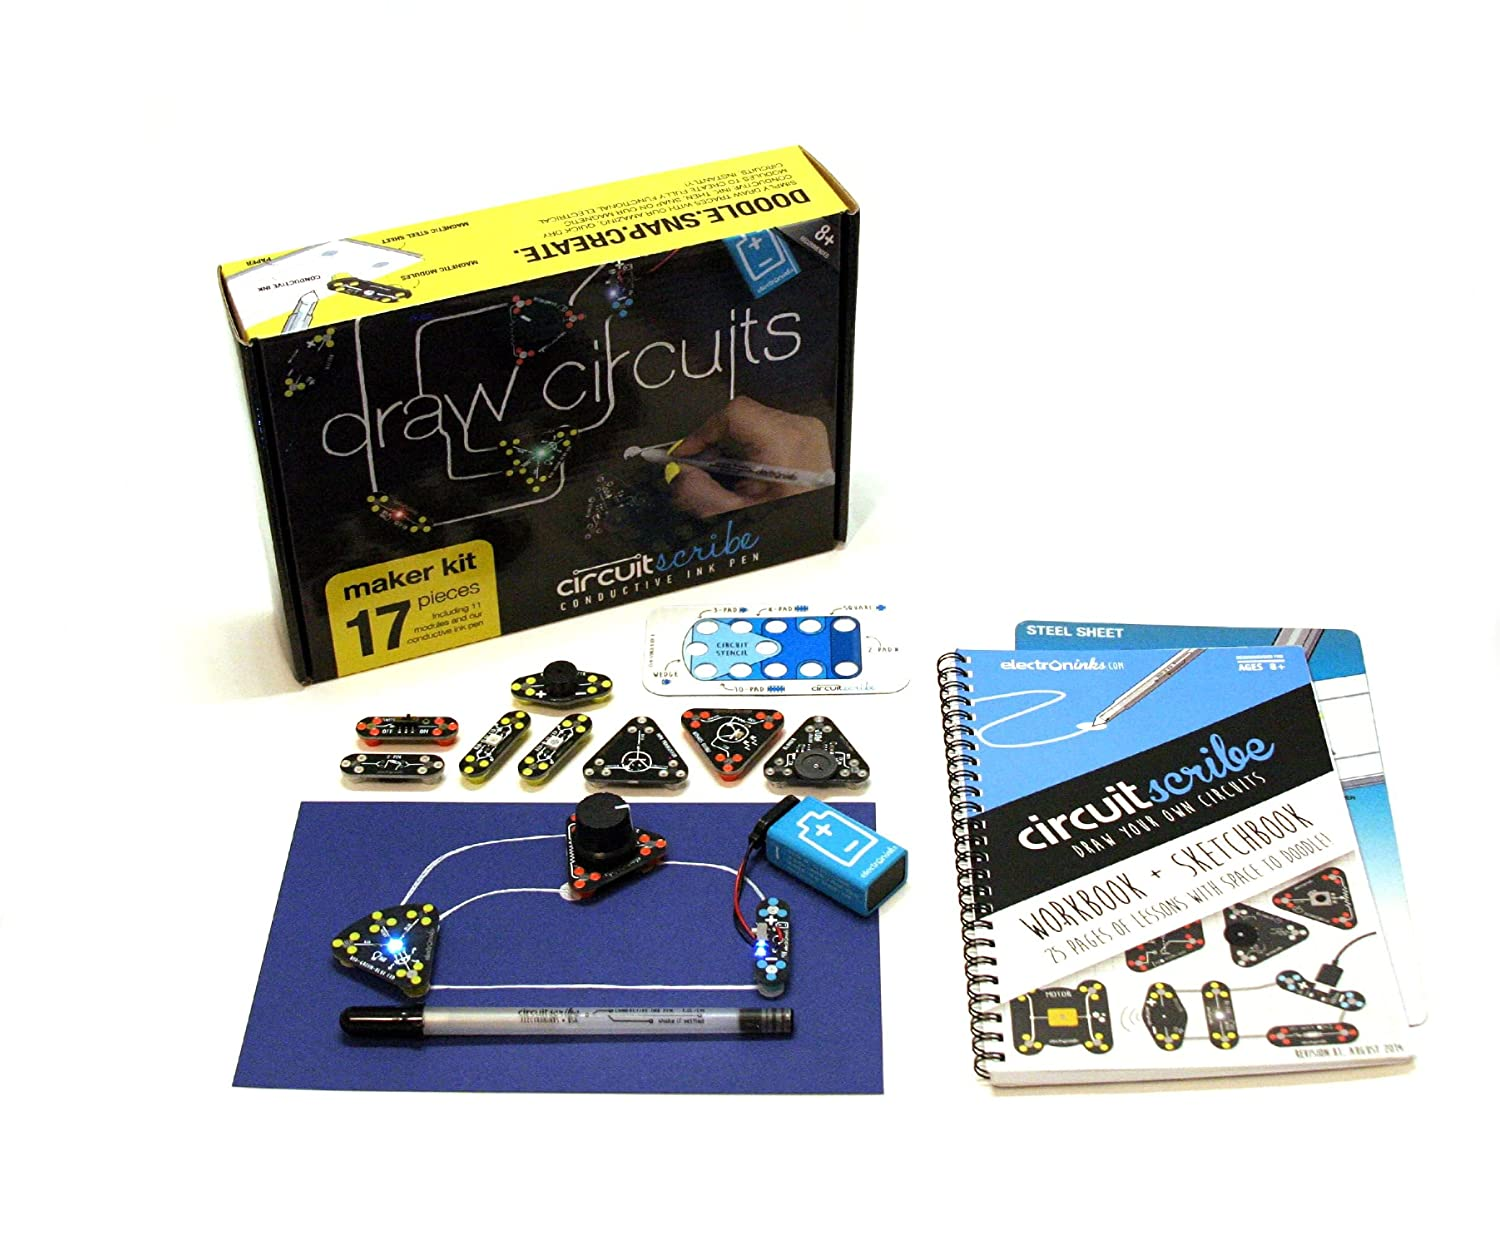 Circuit Scribe Maker Kit Includes Stem Workbook Project Simulation Electronic Circuits Electronics Conductive Silver Ink Pen And Everything You Need To Learn Explore Create Your Own